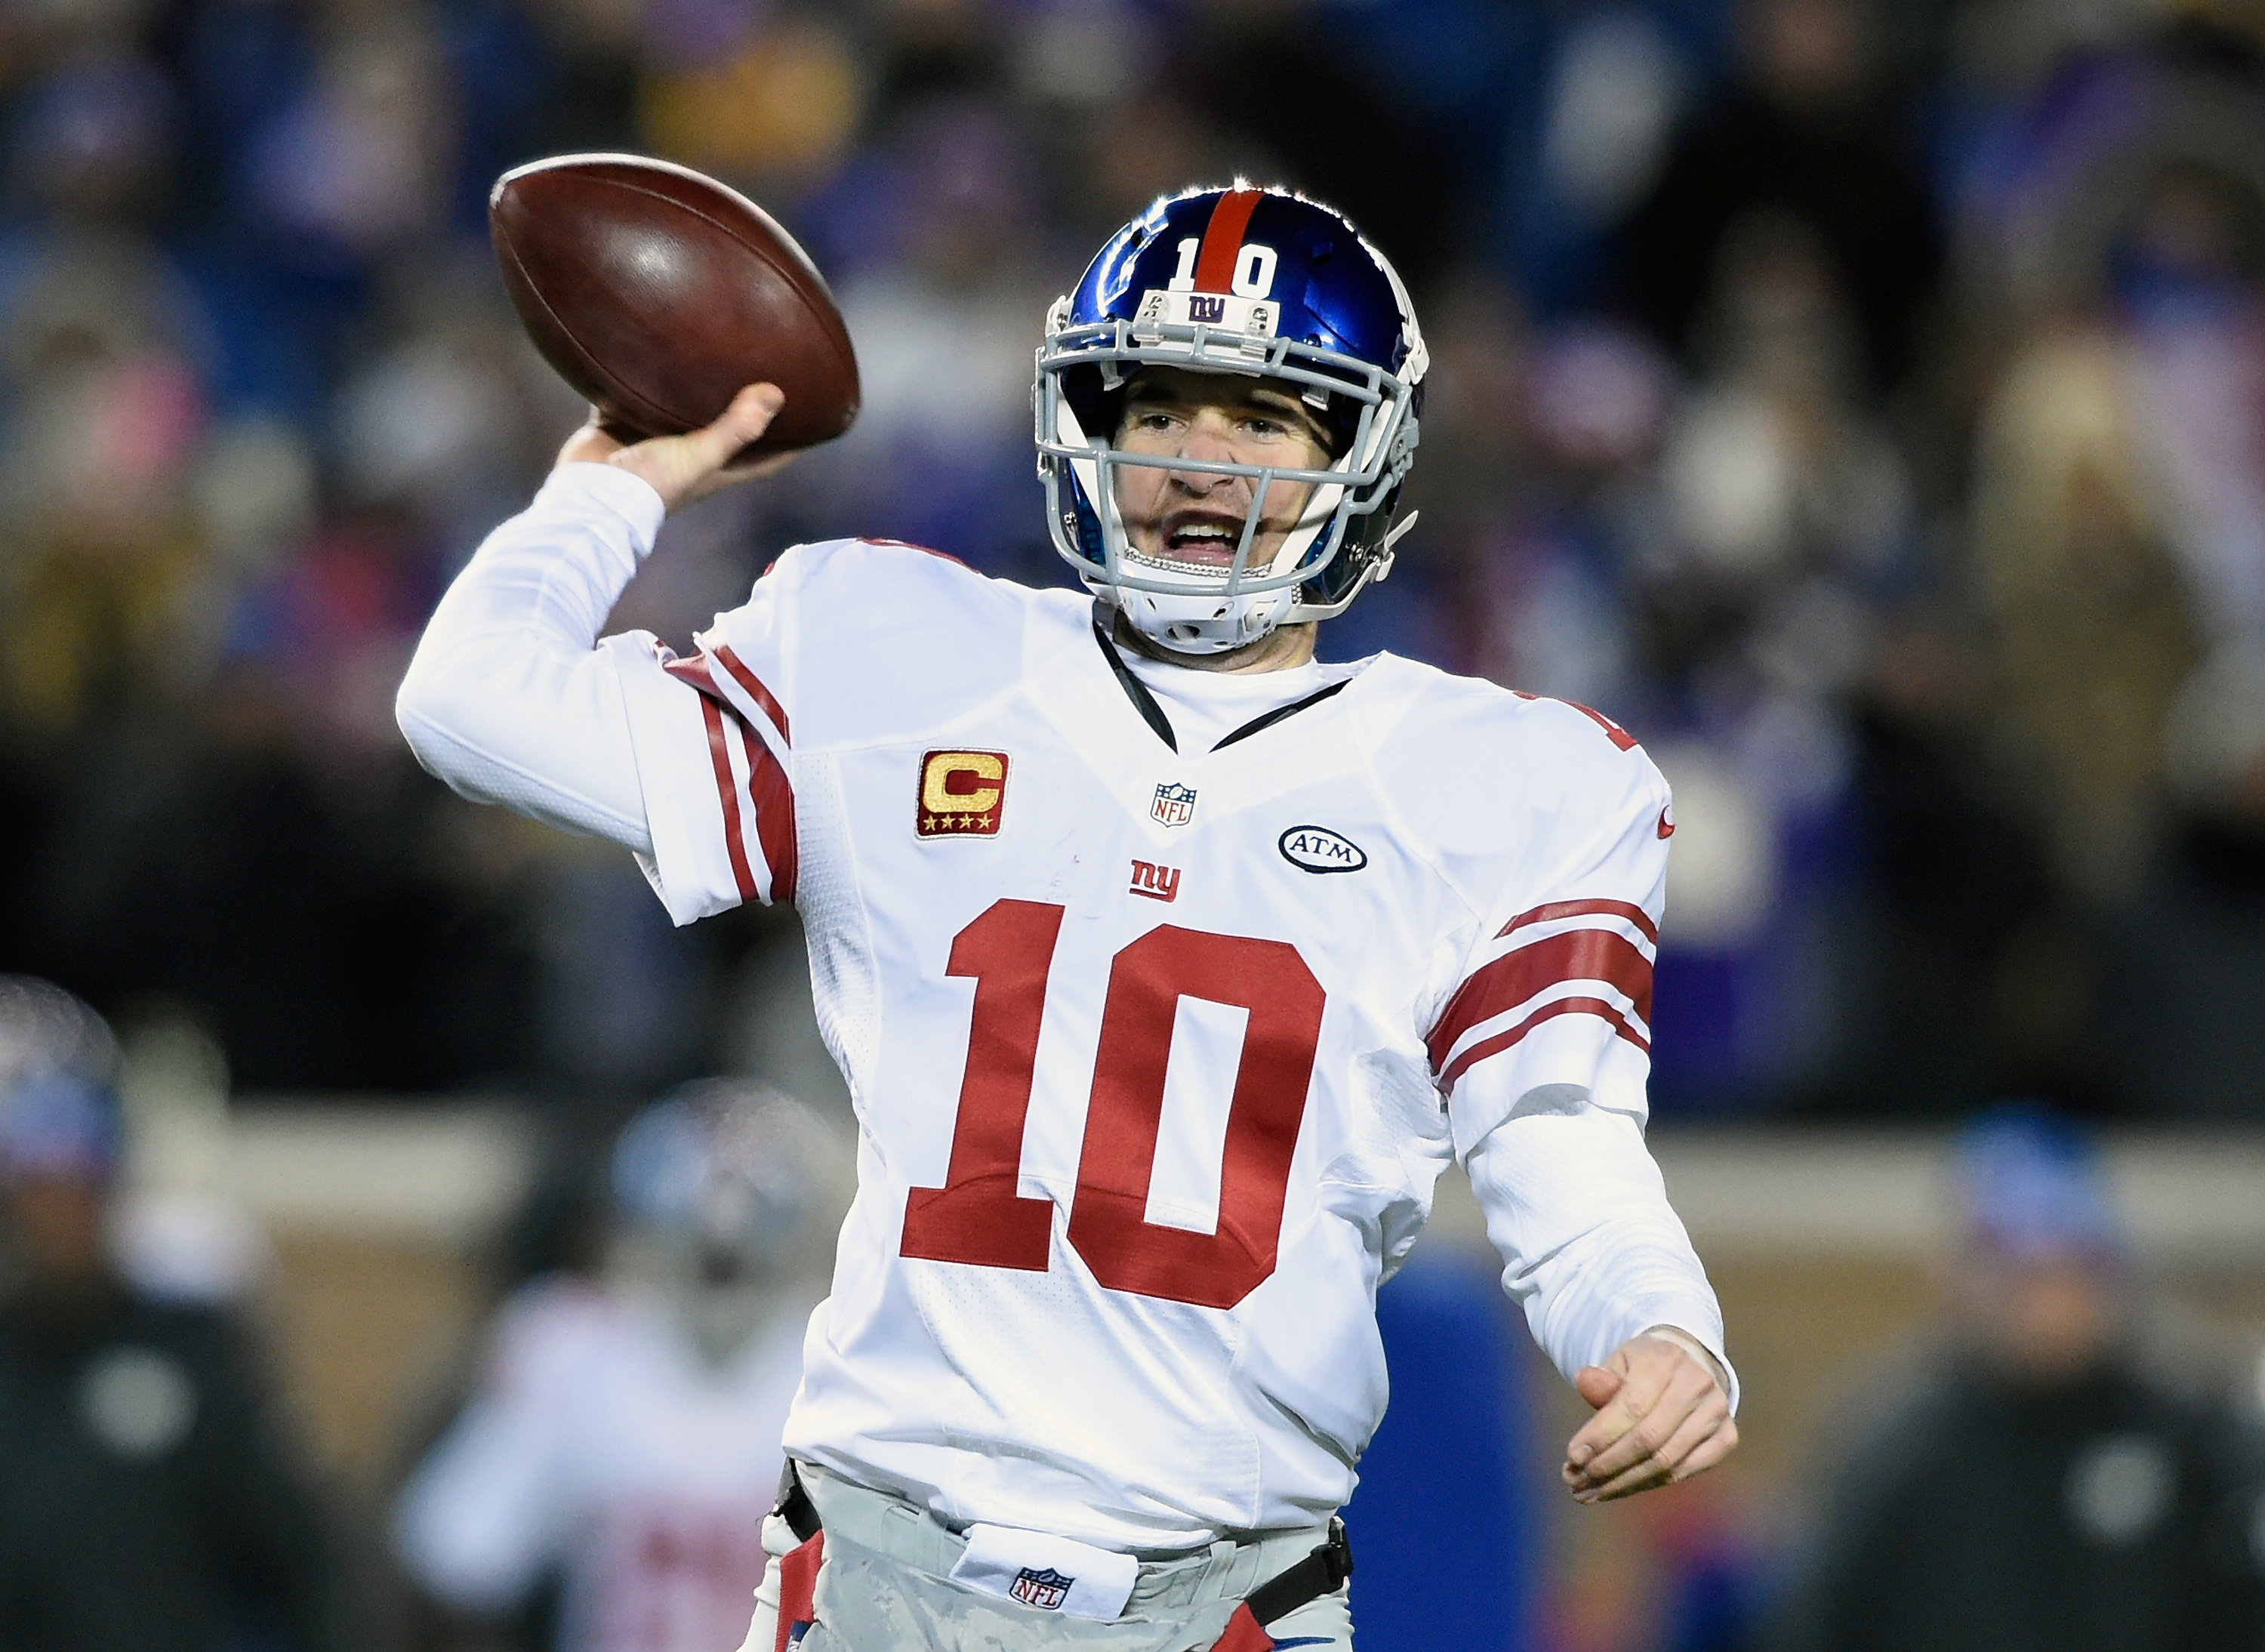 Giants quarterback Eli Manning passes the ball during the second quarter of the game against the Minnesota Vikings at TCF Bank Stadium in Minneapolis on Dec. 27, 2015. (Photo by Hannah Foslien/Getty Images)